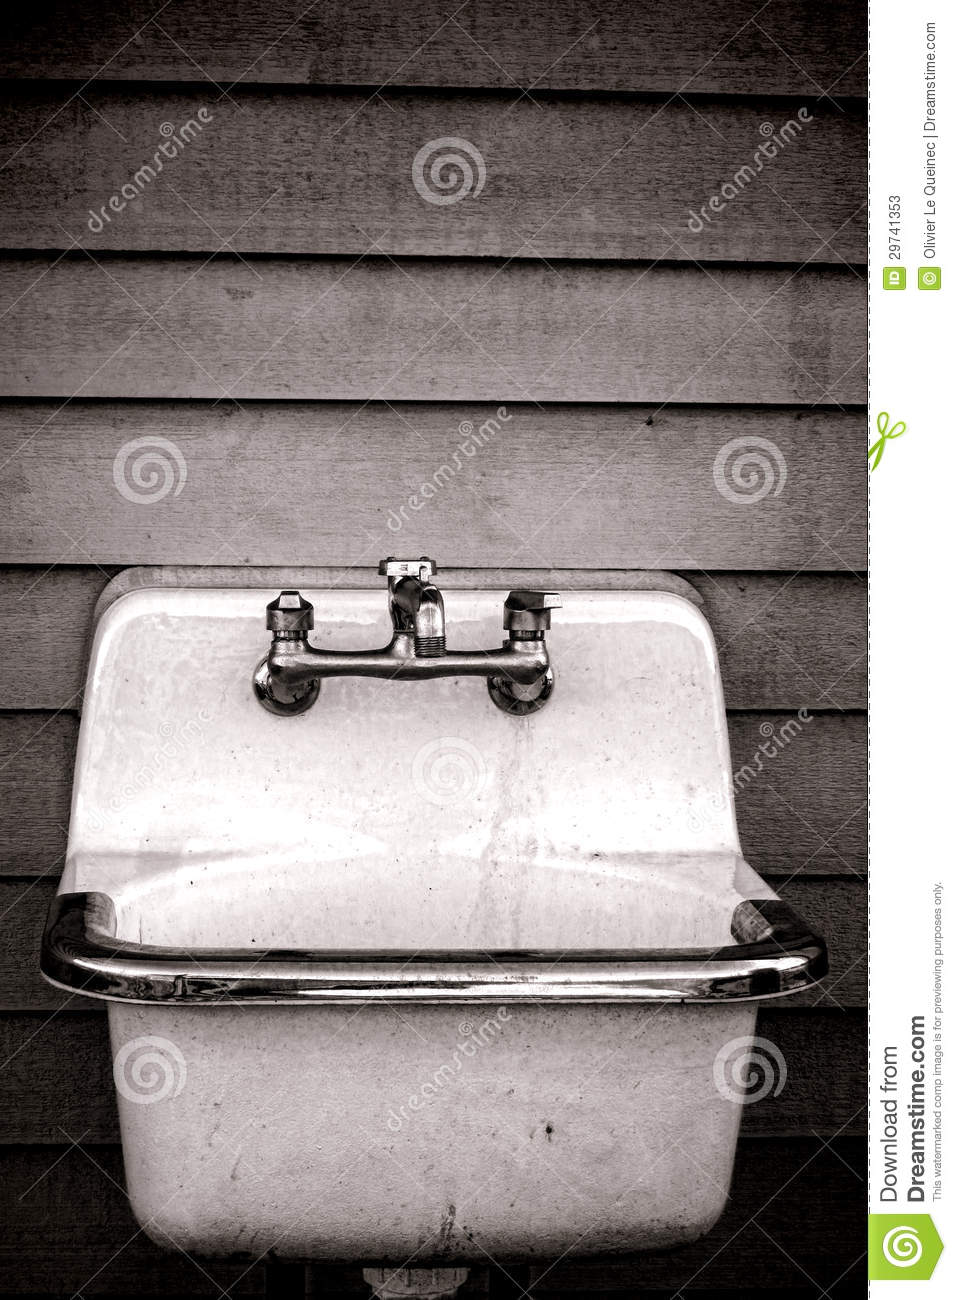 Vintage Enamel Utility Tub Sink On Old House Wall Stock Photos - Image ...